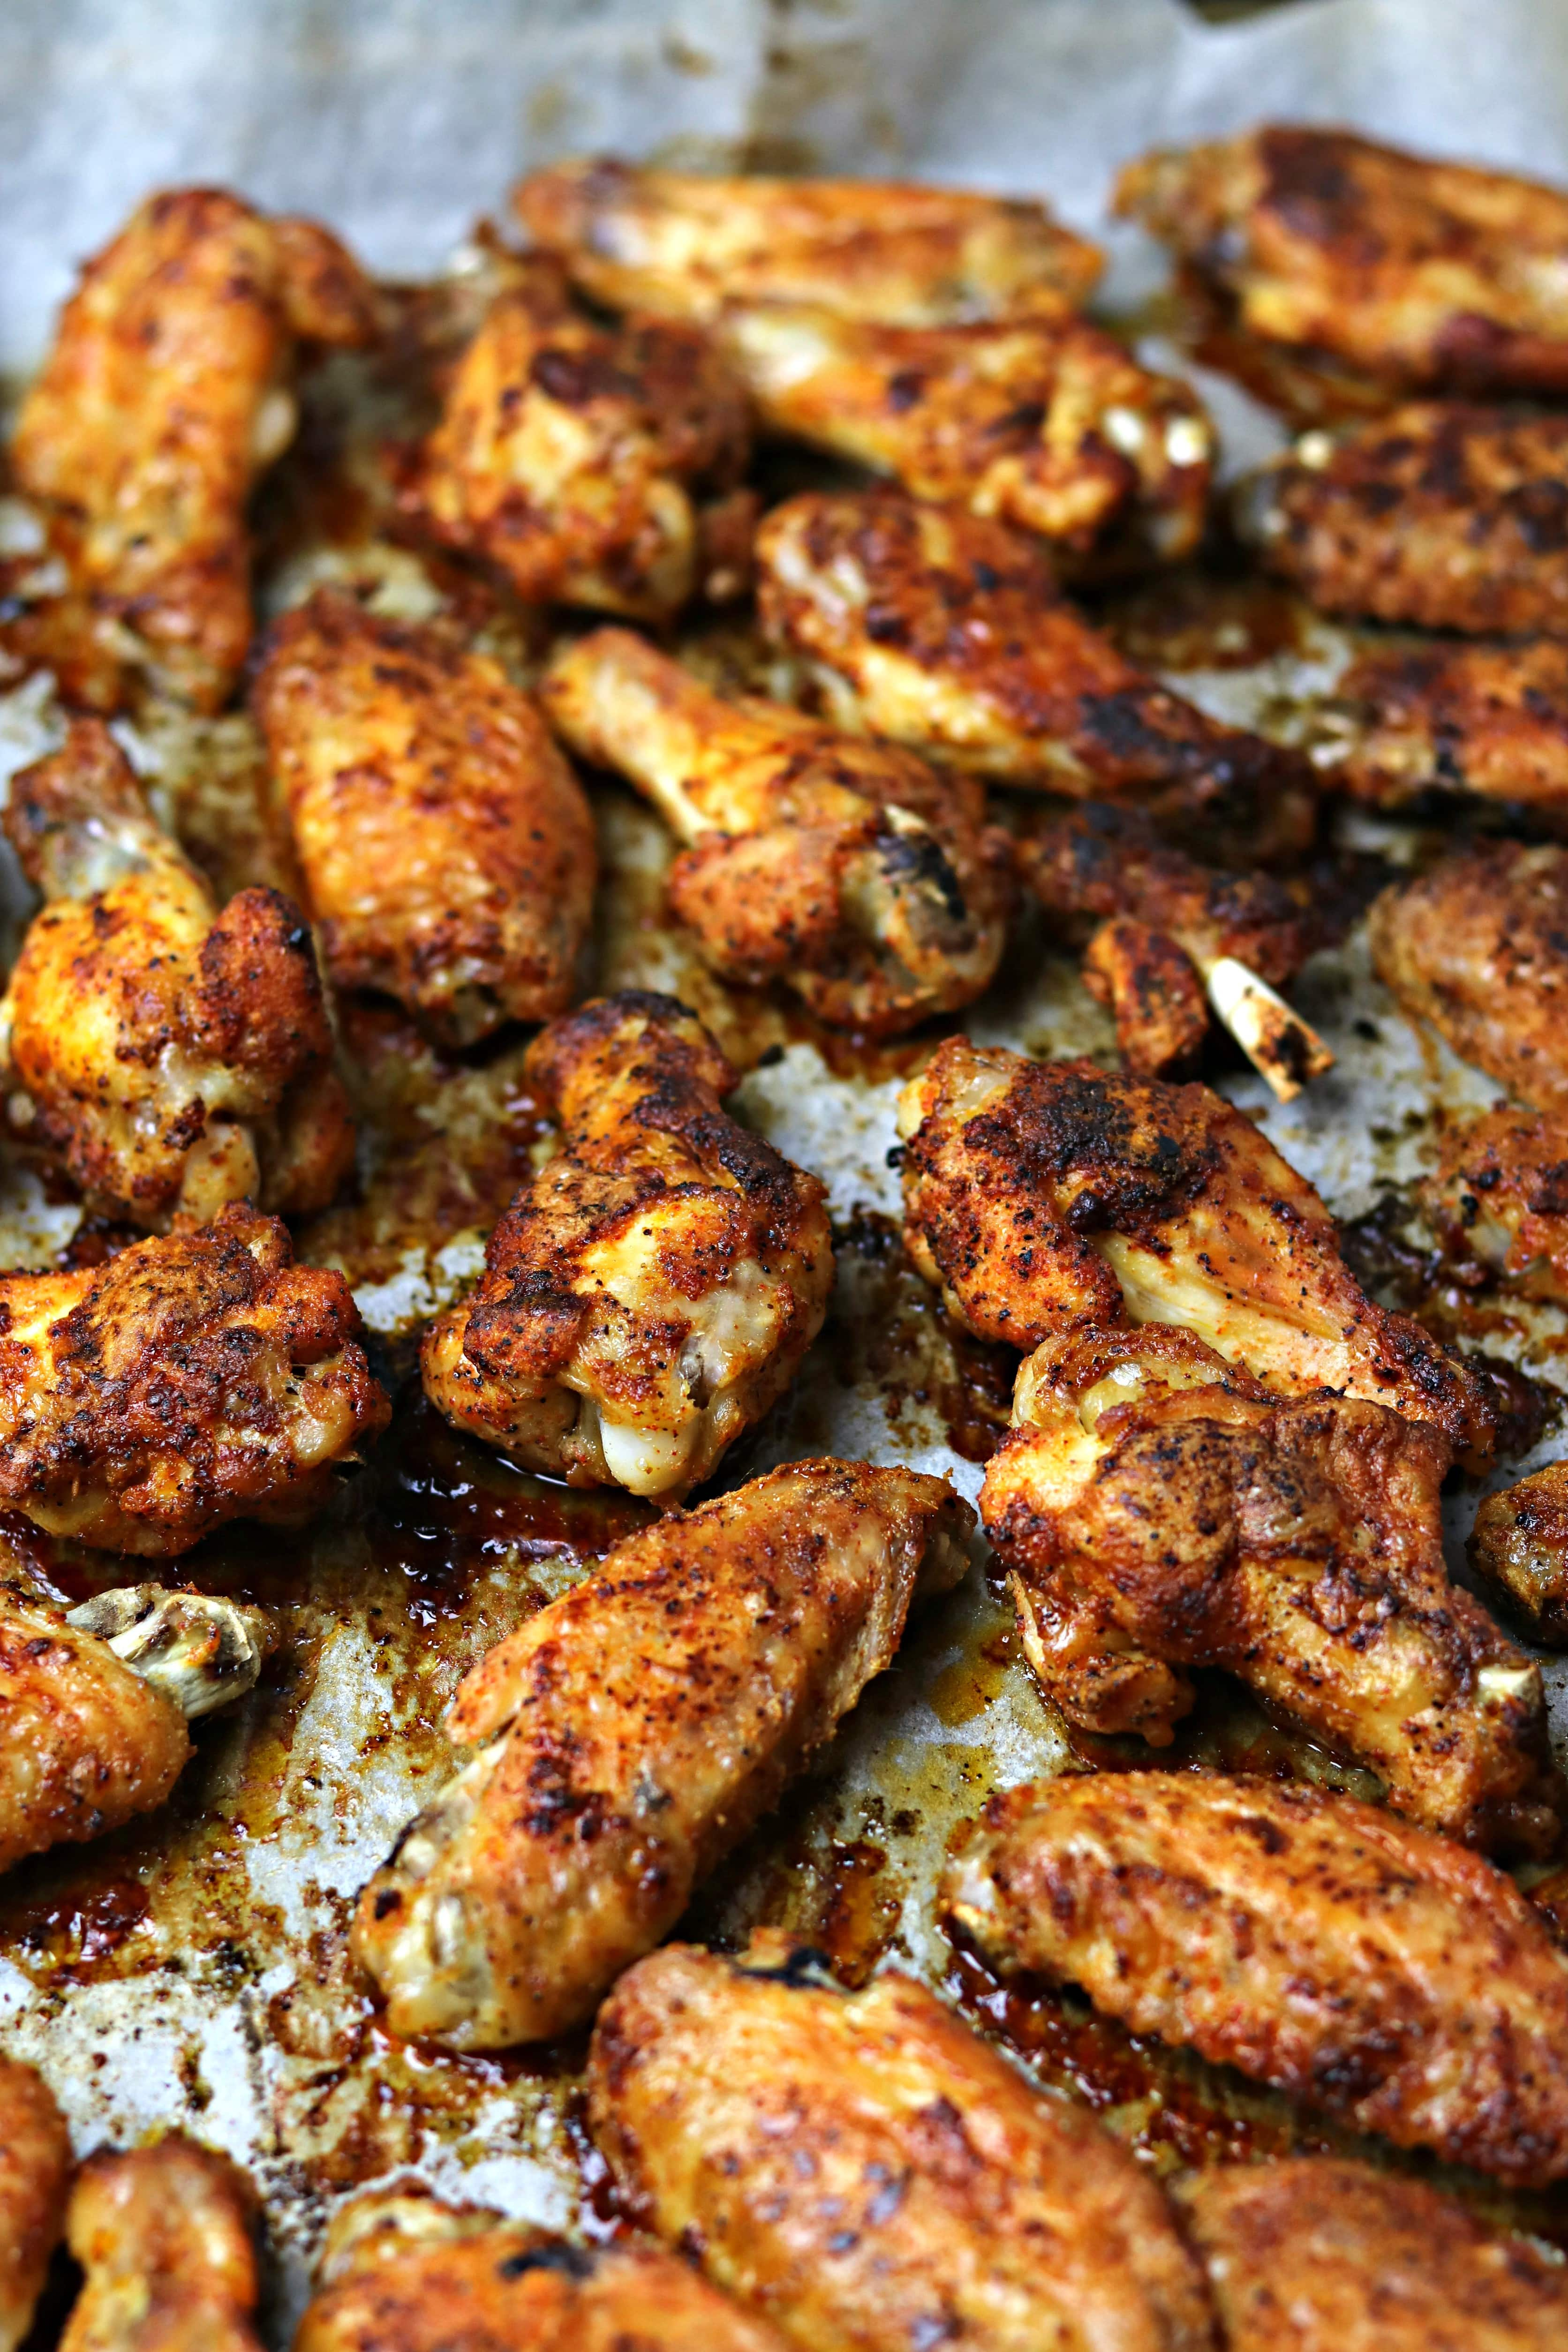 An easy, cheap keto dinner recipe for Oven Fried Chicken Wings. Using a special tip, you get the taste of fried chicken without deep frying. #keto #lowcarb #easy #recipe #chicken #chickendinner #ketodinner #airfryer #sheetpanmeal #healthydinner